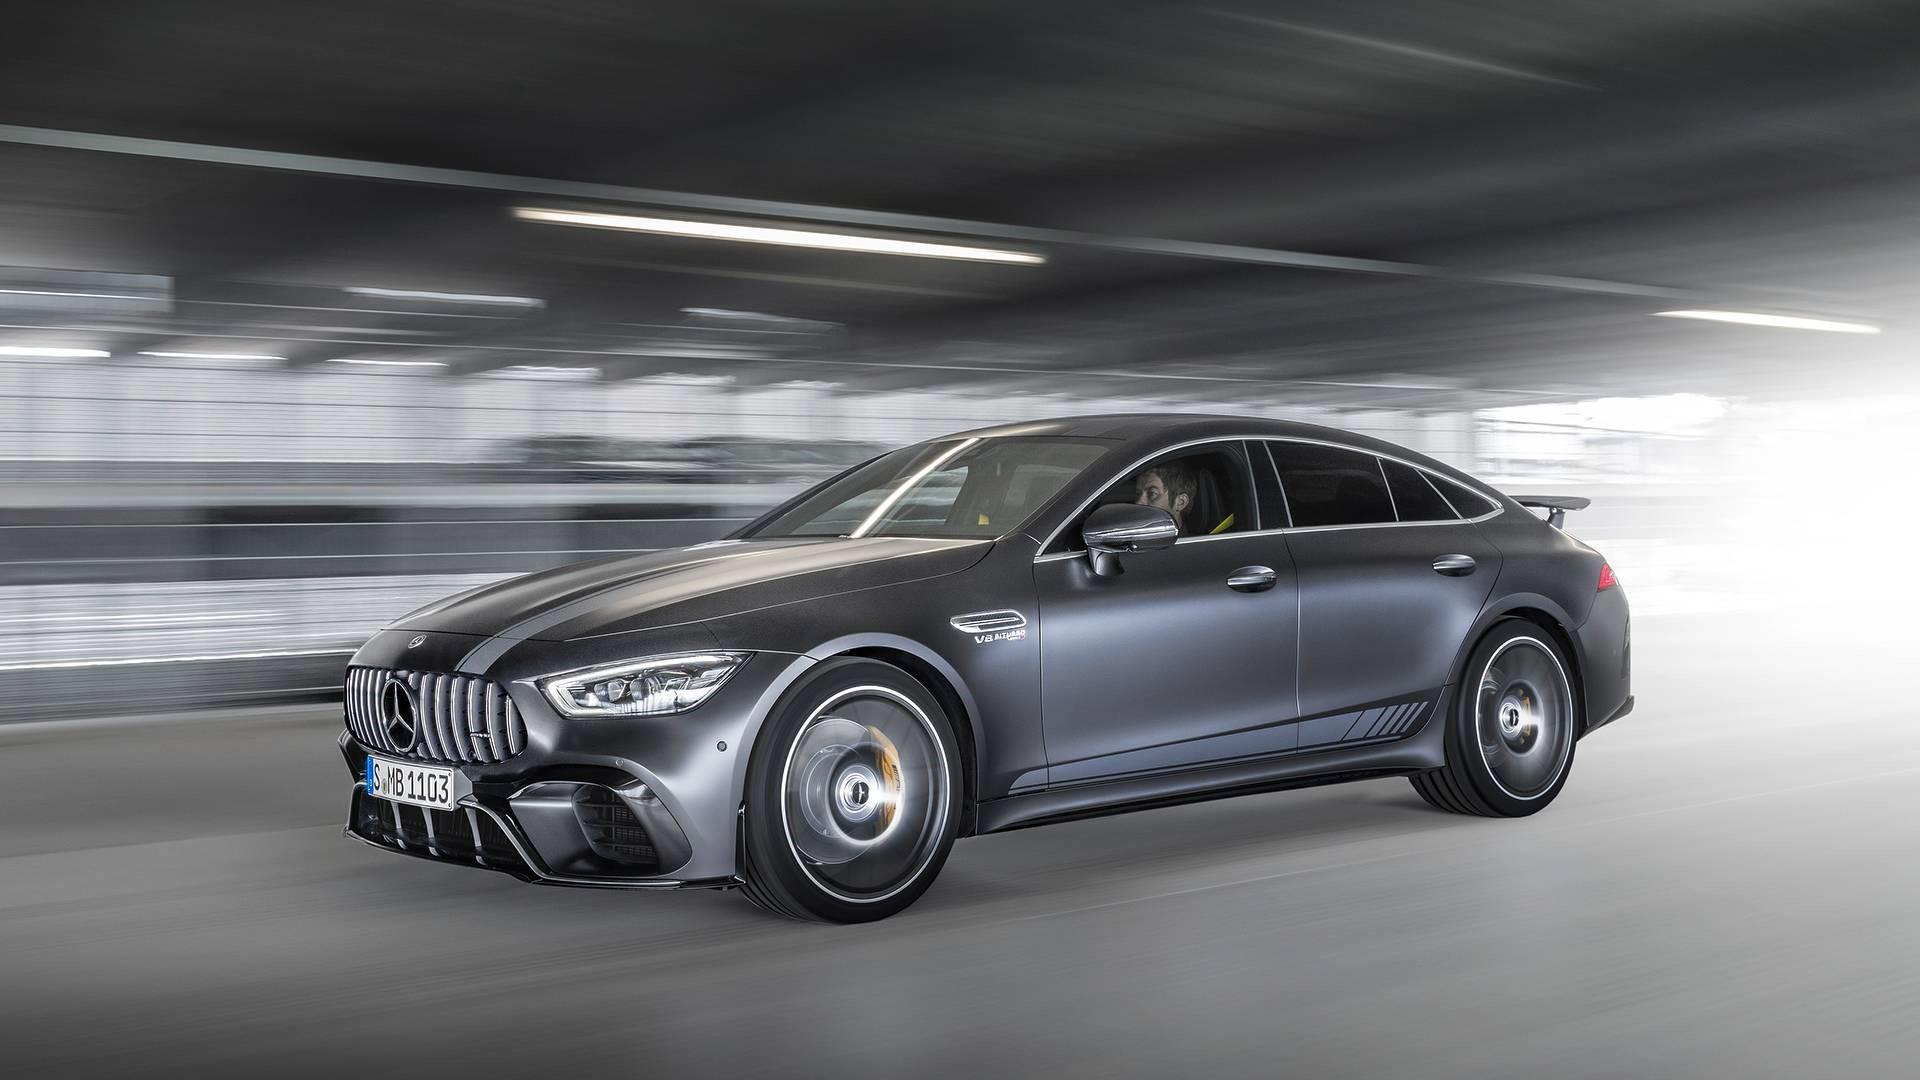 une-version-tres-exclusive-mercedes-amg-gt-63-s-coupe-edition-1-780-2.jpg